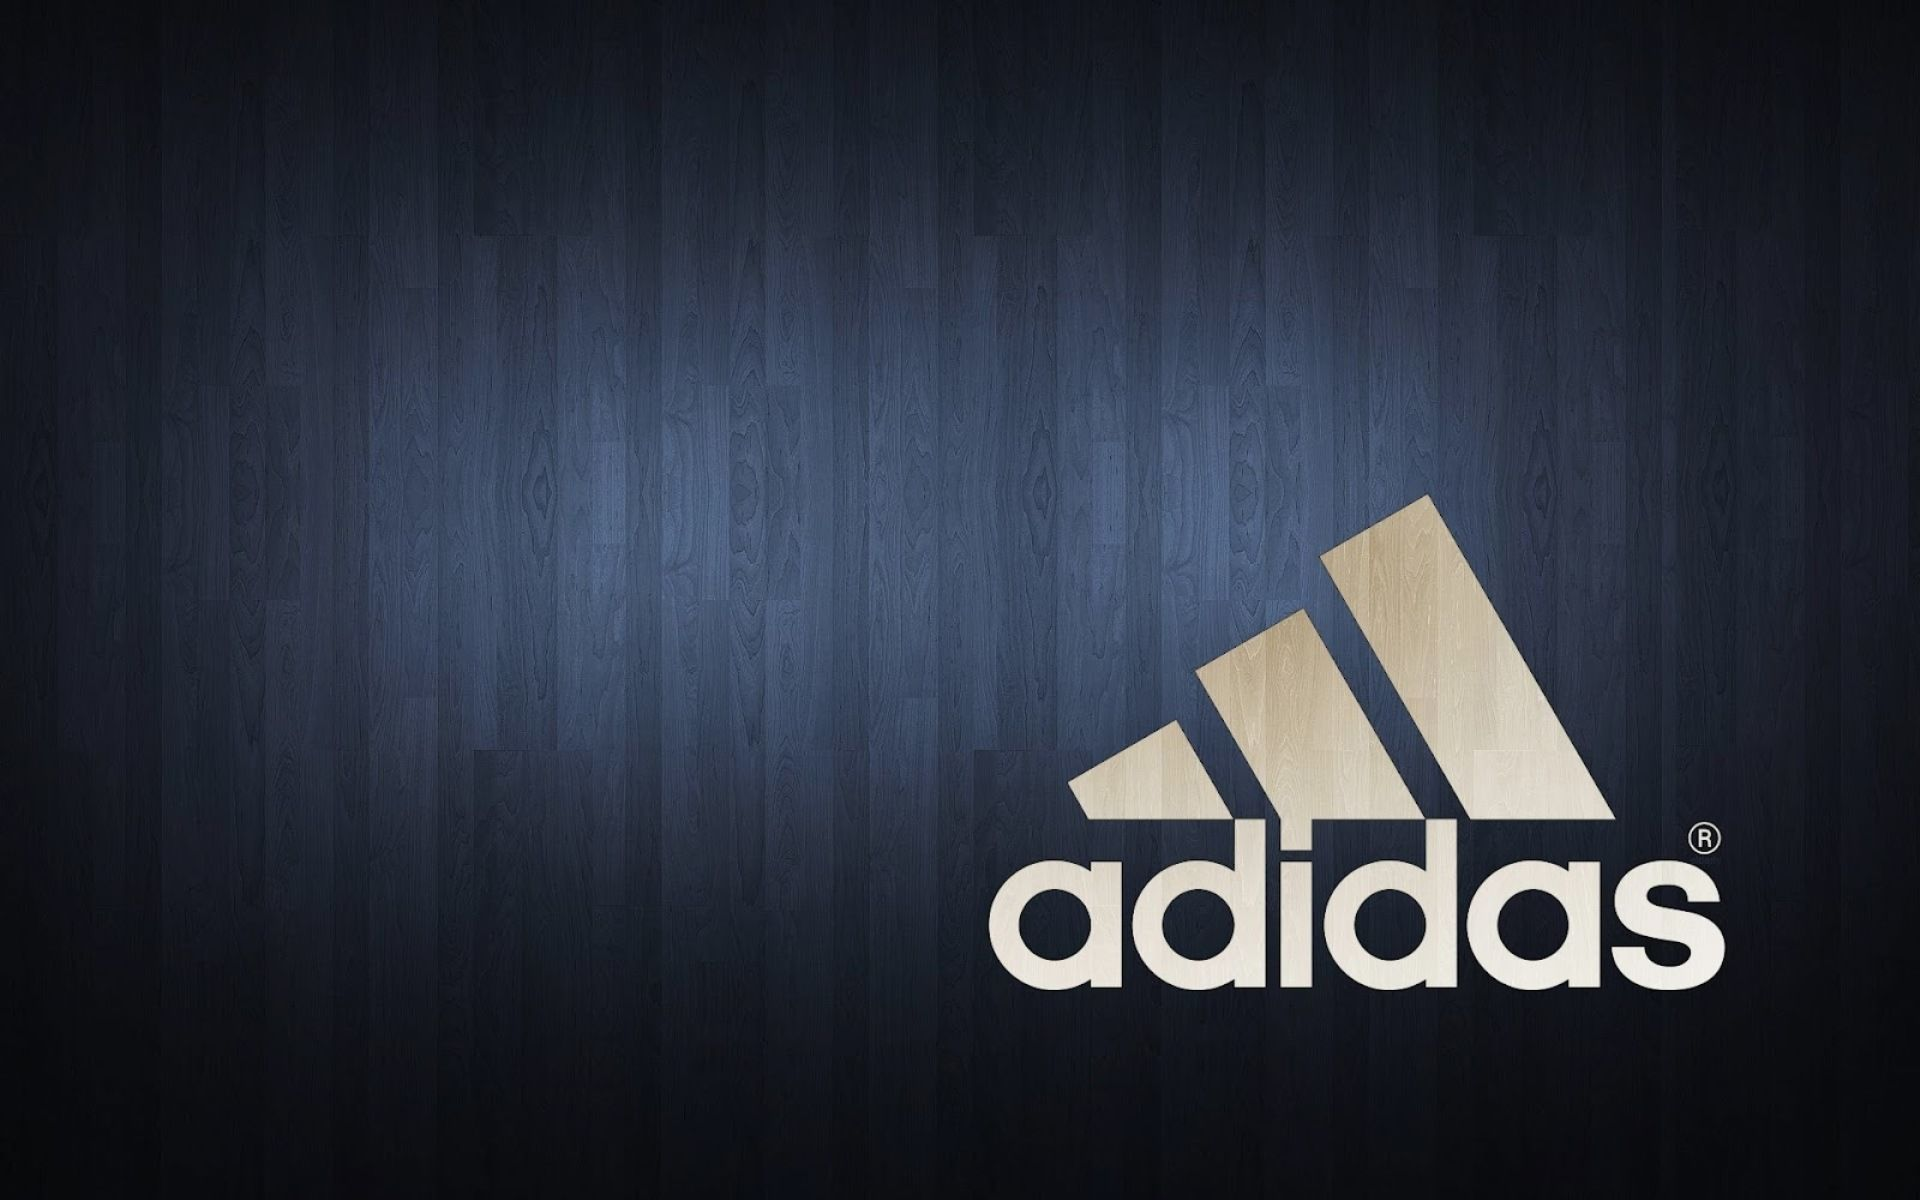 adidas hd, adidas logo pictures